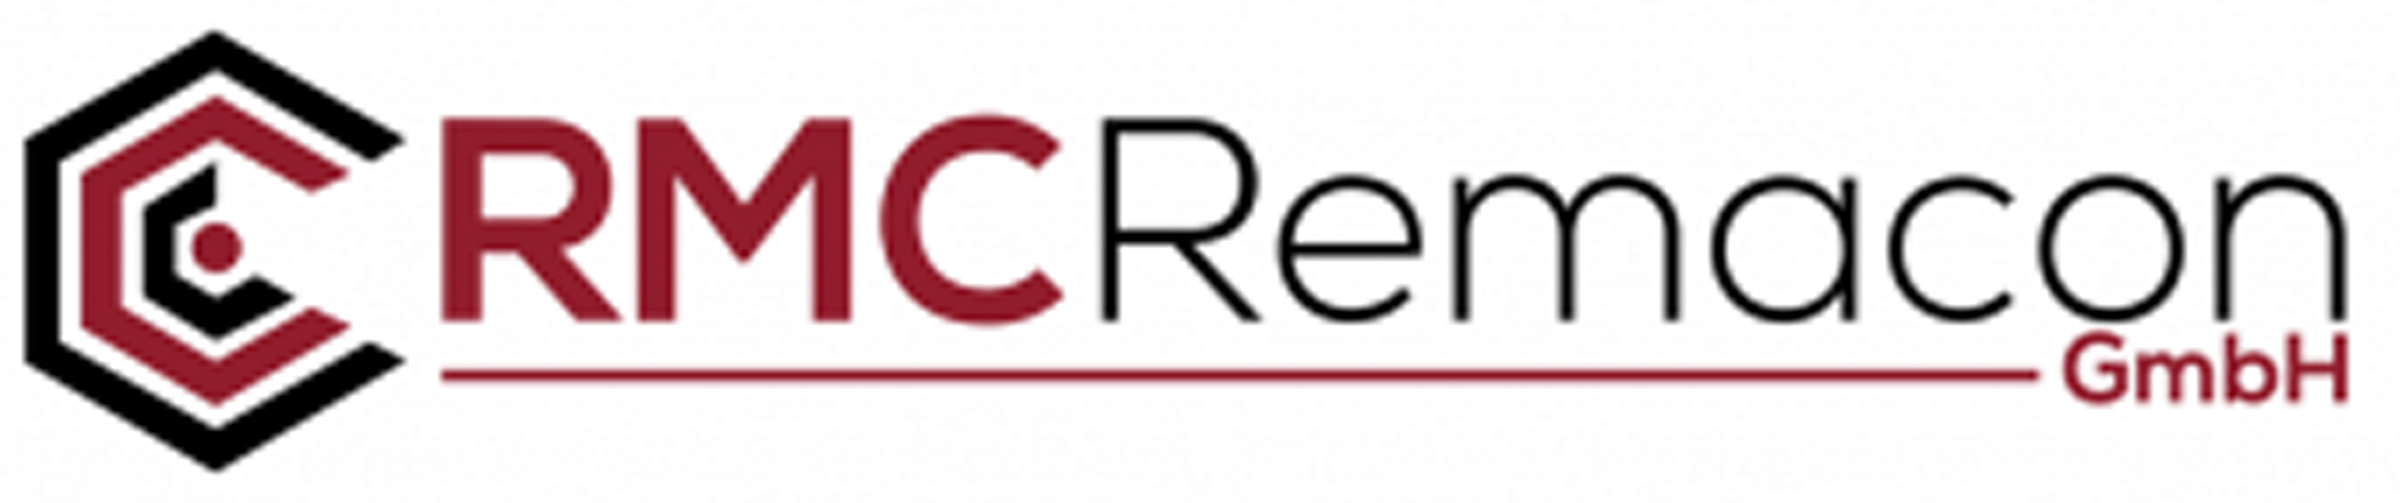 RMC Remacon GmbH